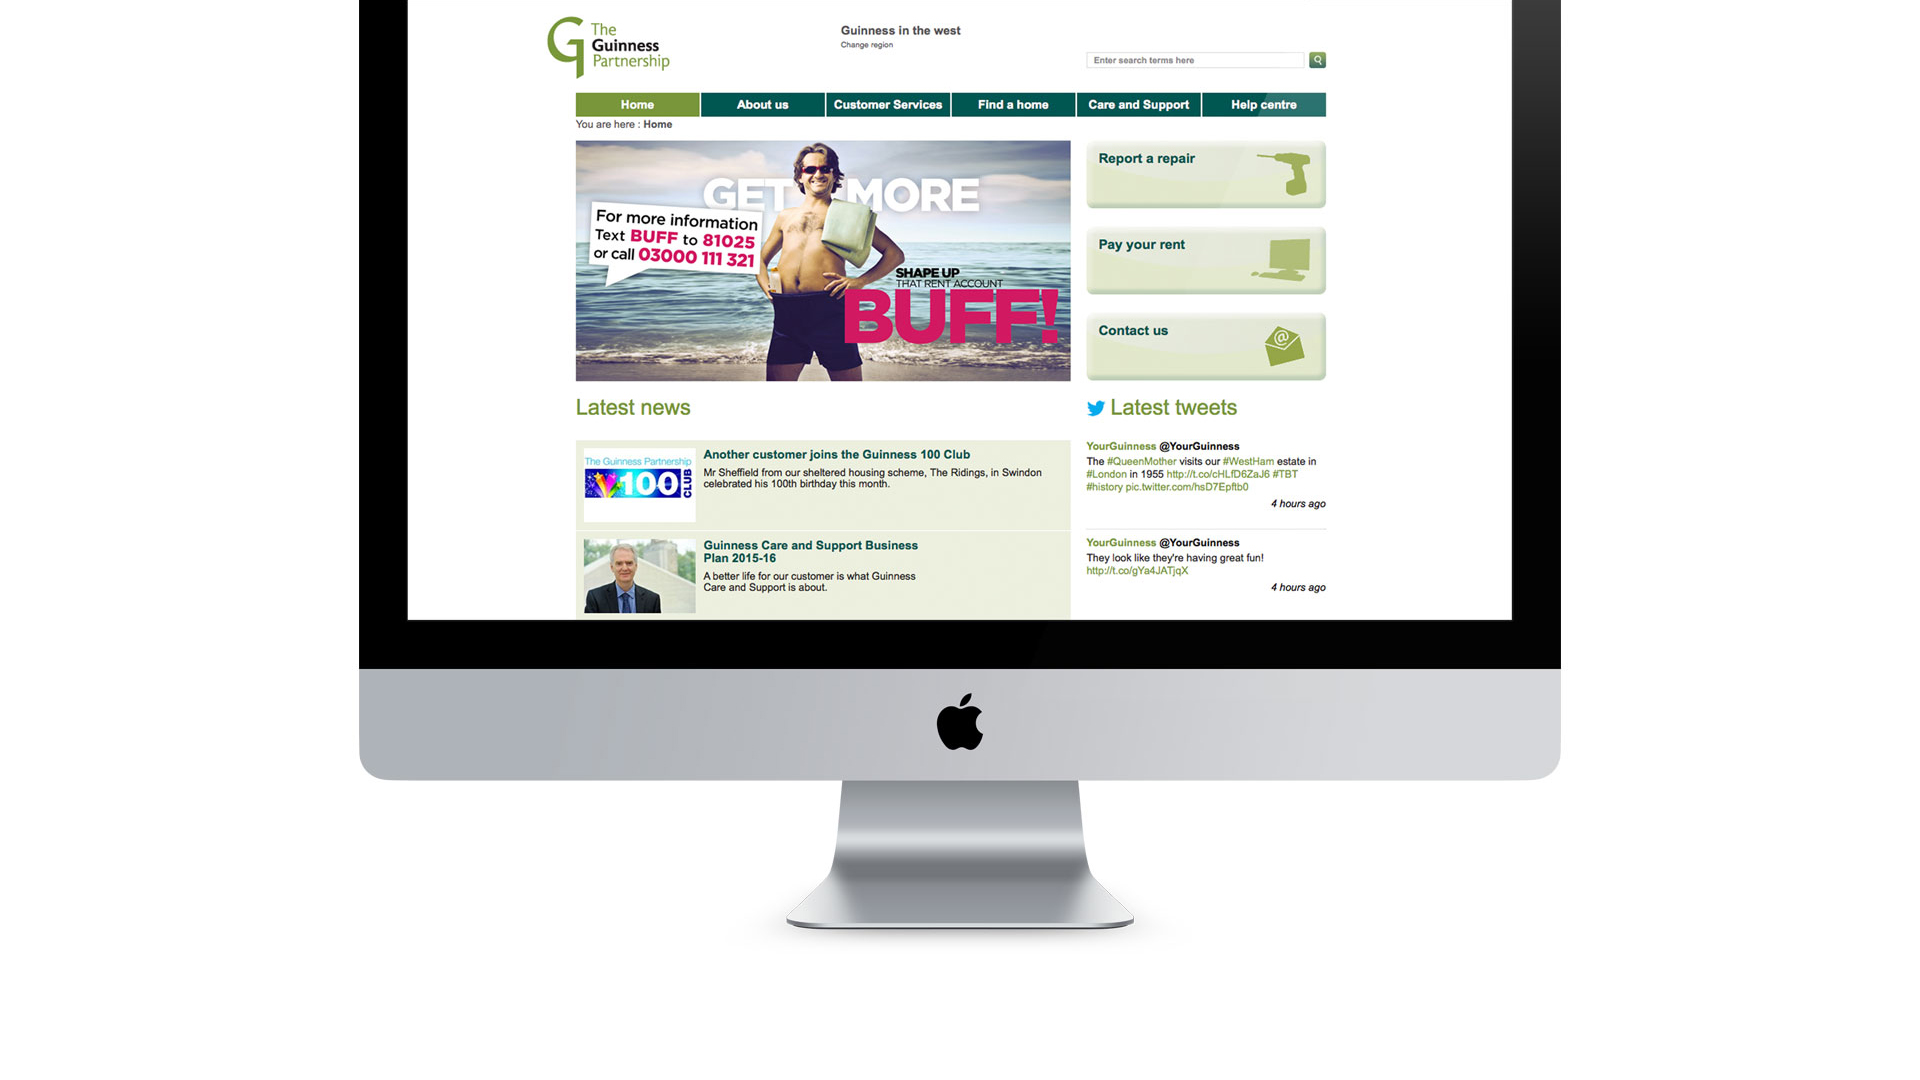 Get More Buff Web banner, The Guinness Partnership | Our work - Astwood Design